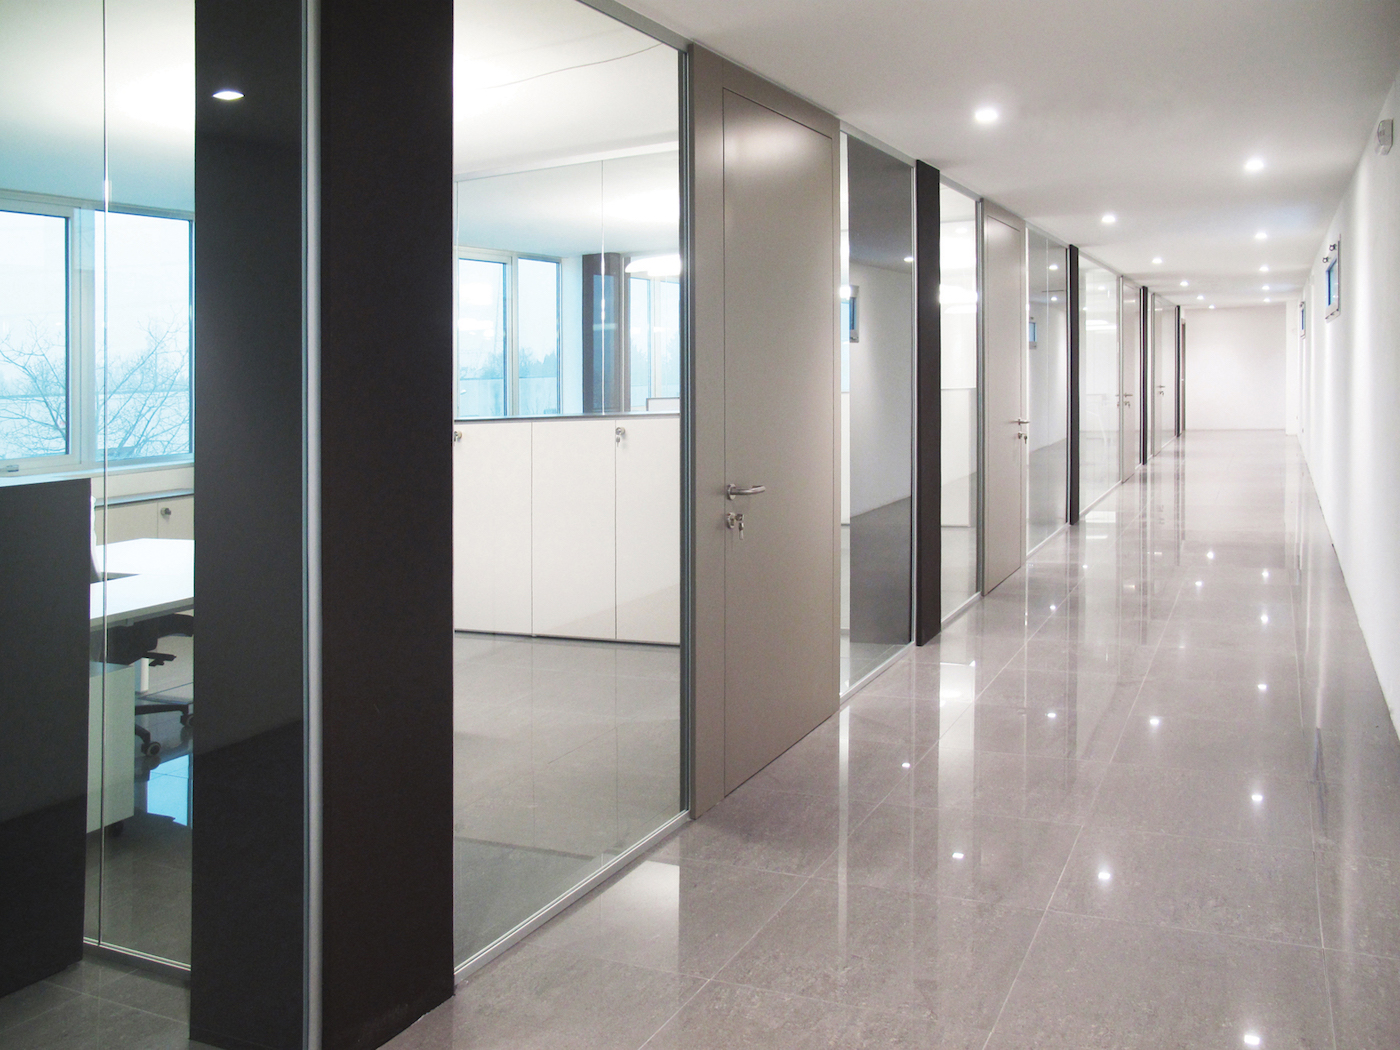 Povelato Designer Demountable Fitted Wall Partitions